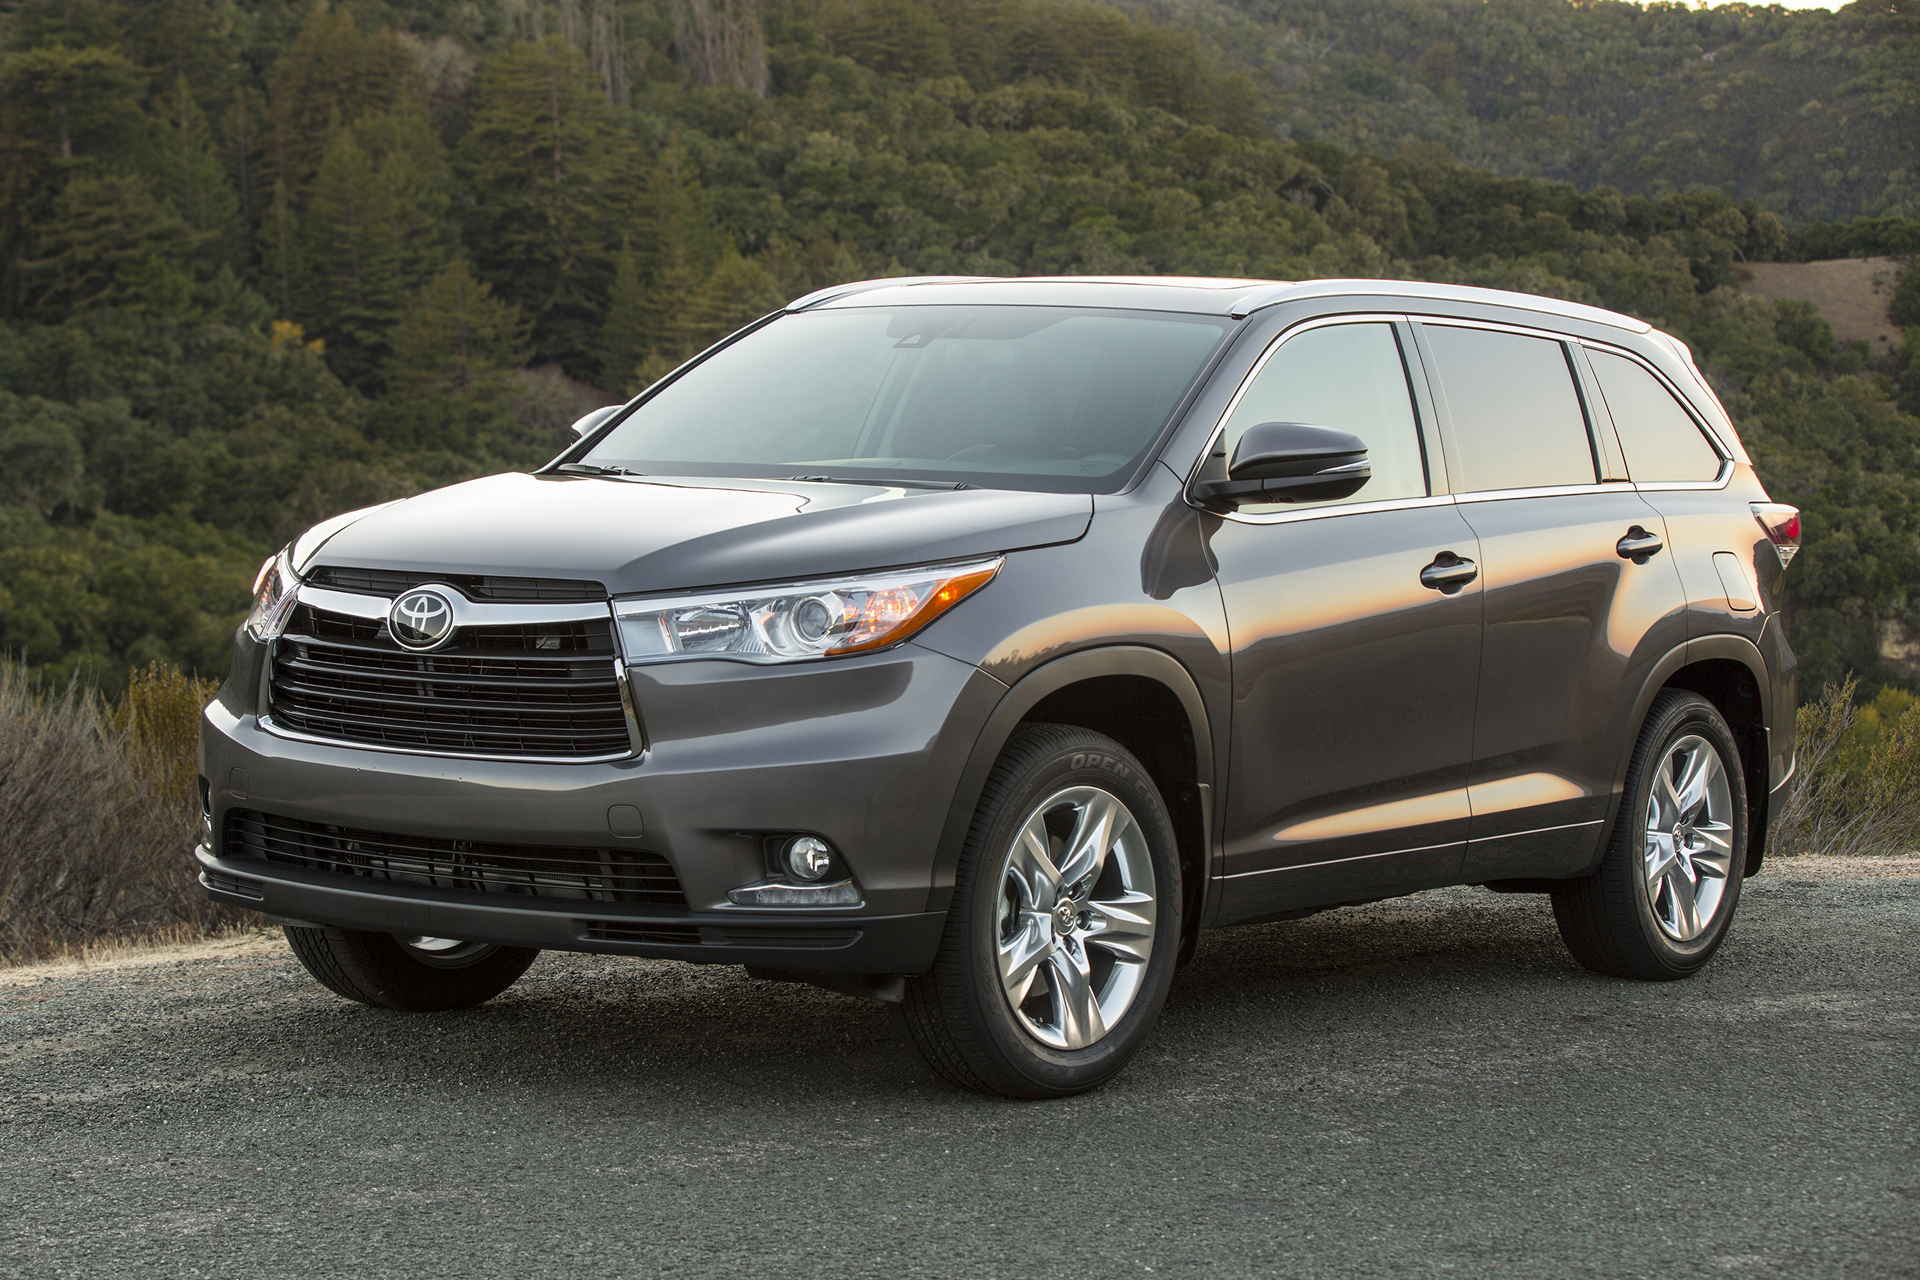 2016 toyota highlander review carrrs auto portal. Black Bedroom Furniture Sets. Home Design Ideas